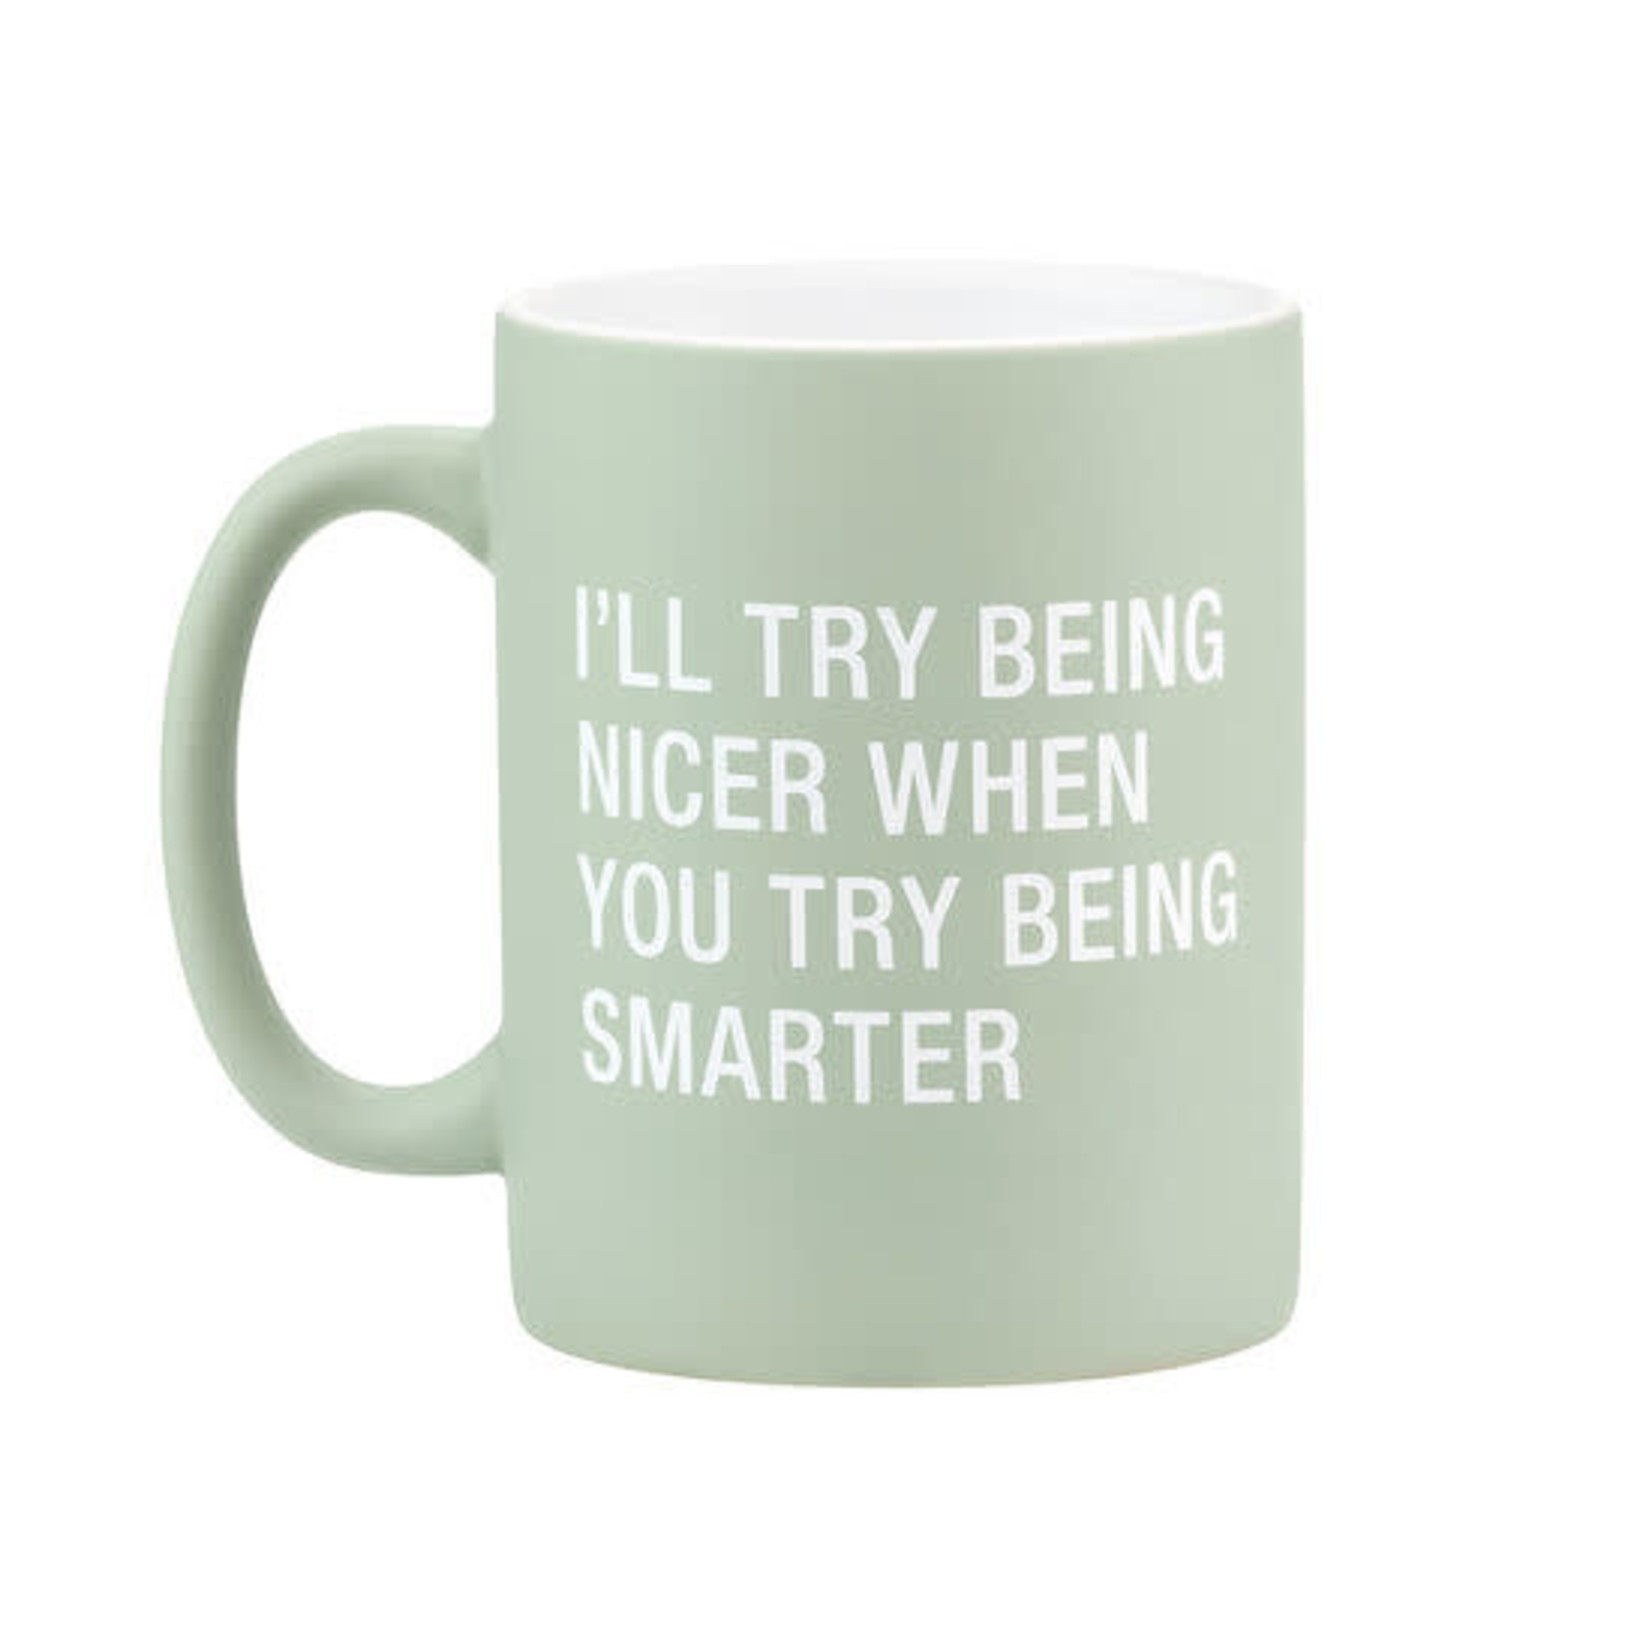 About Face Designs, Inc Mug: Being Smarter